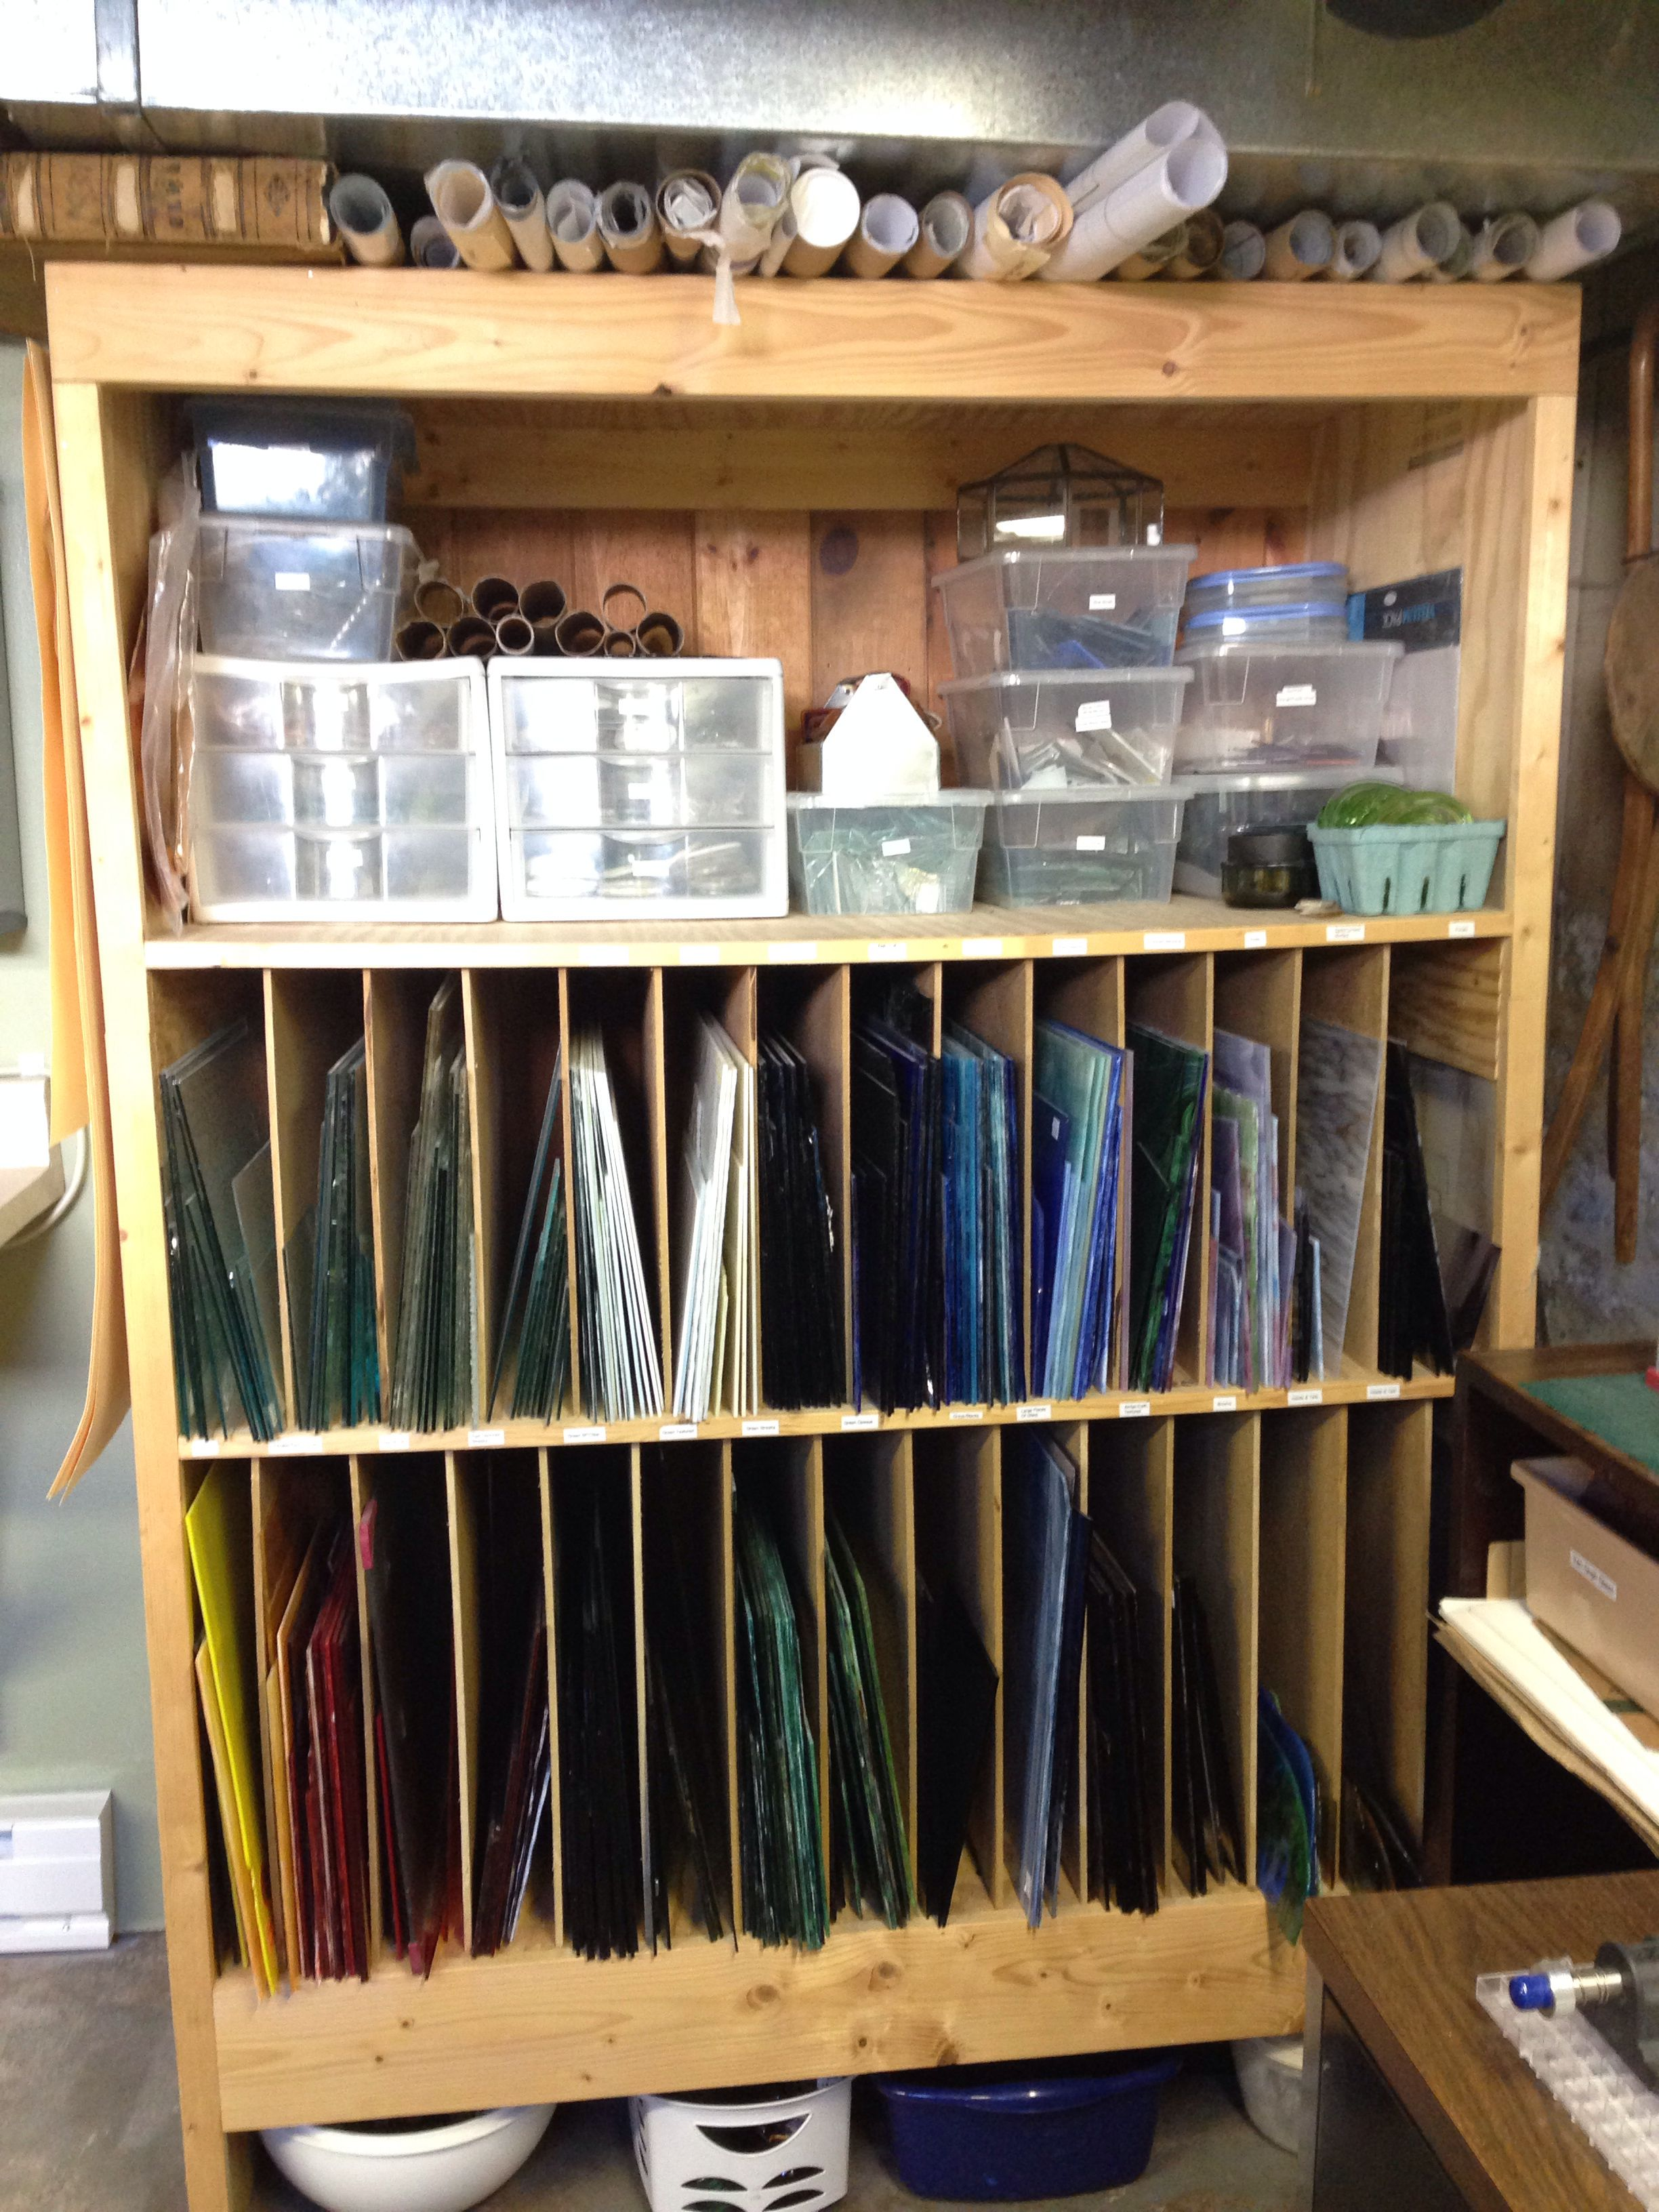 The Quot Glass Dungeon Quot Stained Glass Storage Area